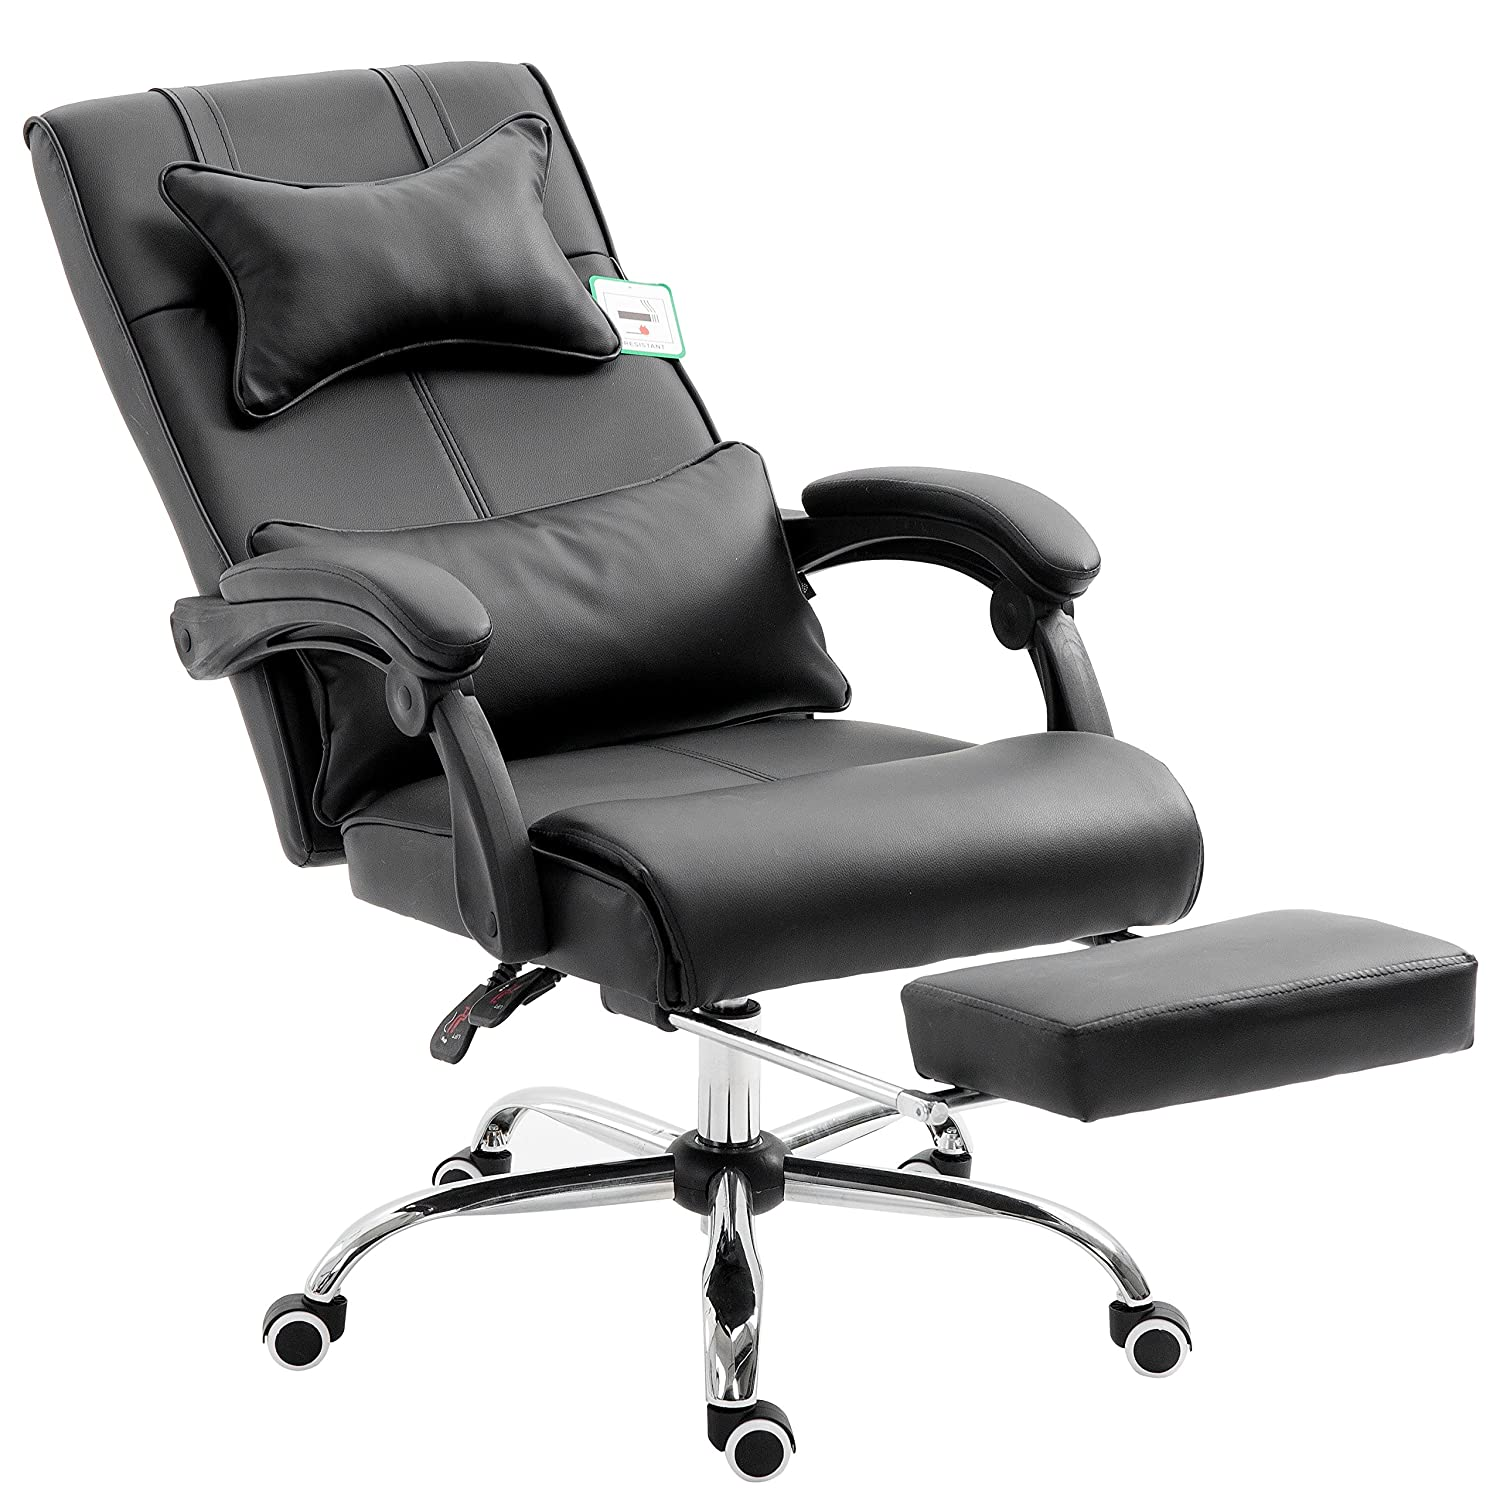 Fabric Office Hippo Mesh Back Swivel Chair Black Folding Arms and Tilt Tension Control